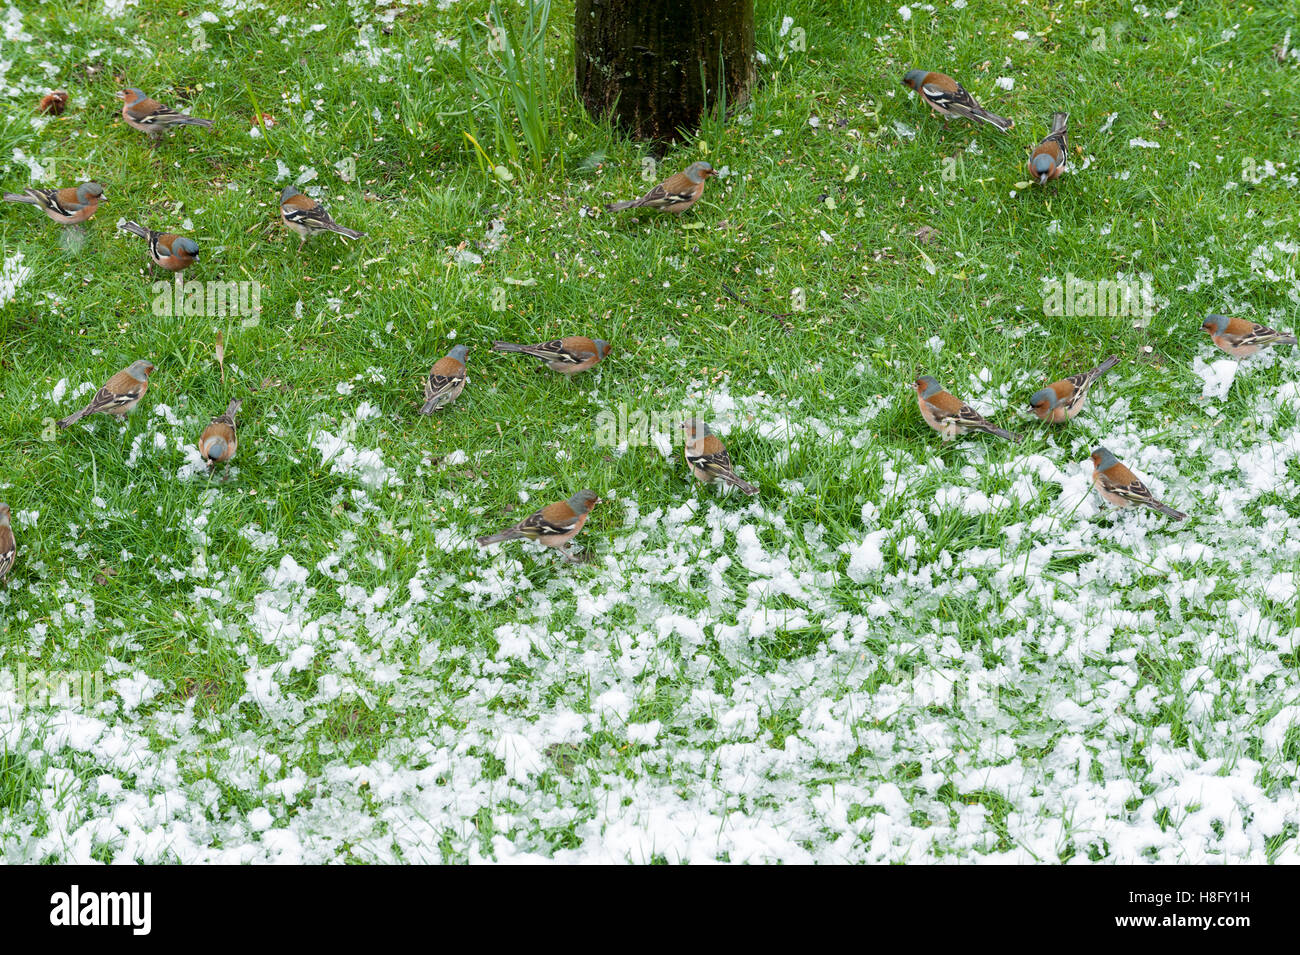 Chaffinches are pecking birdseed on snowy turf, Fringilla coelebs - Stock Image